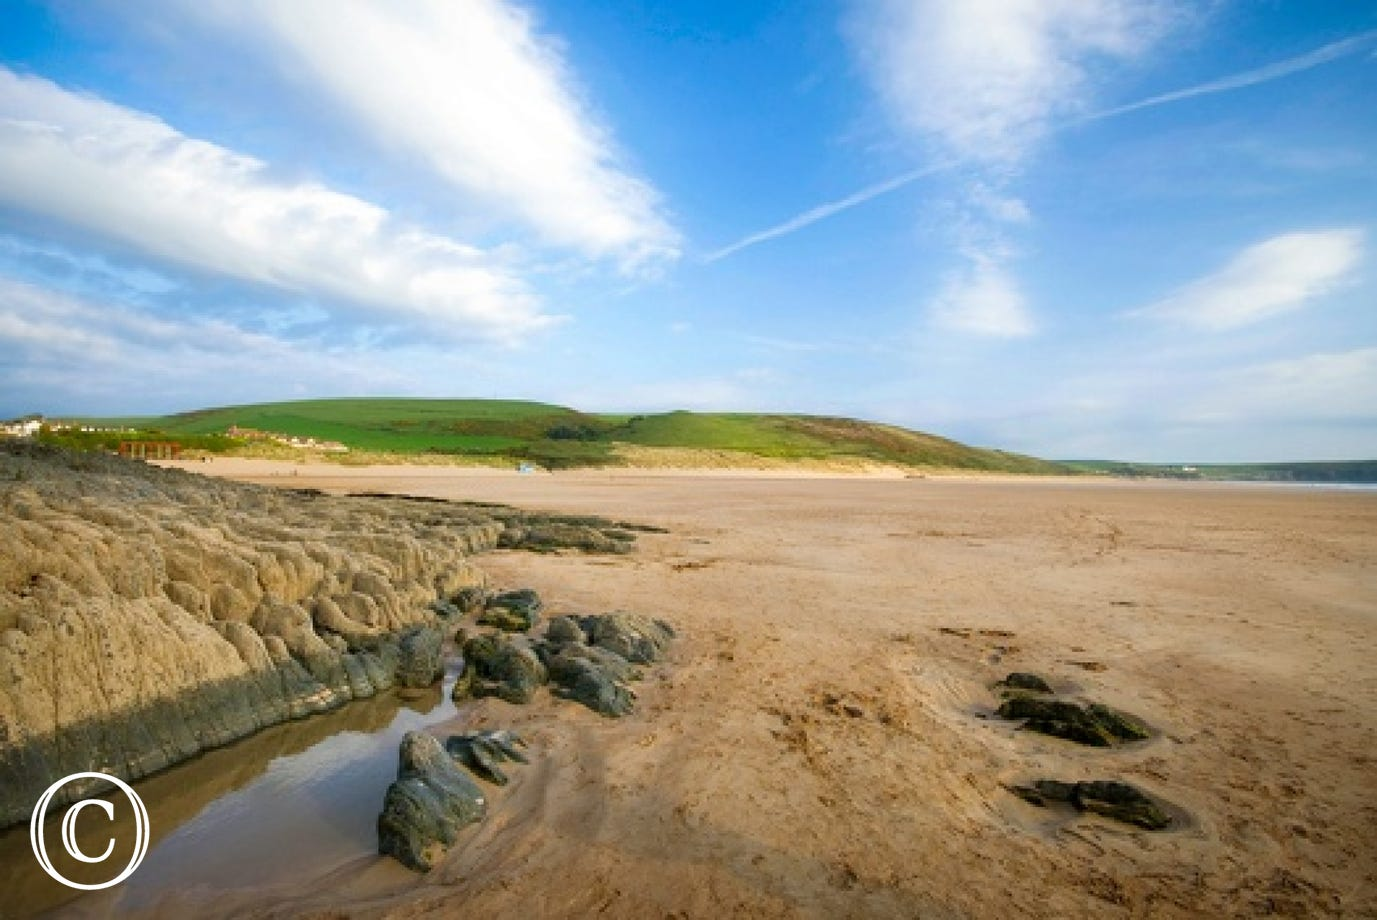 Woolacombe is an award winning beach resort, voted best beach in the UK by TripAdvisor